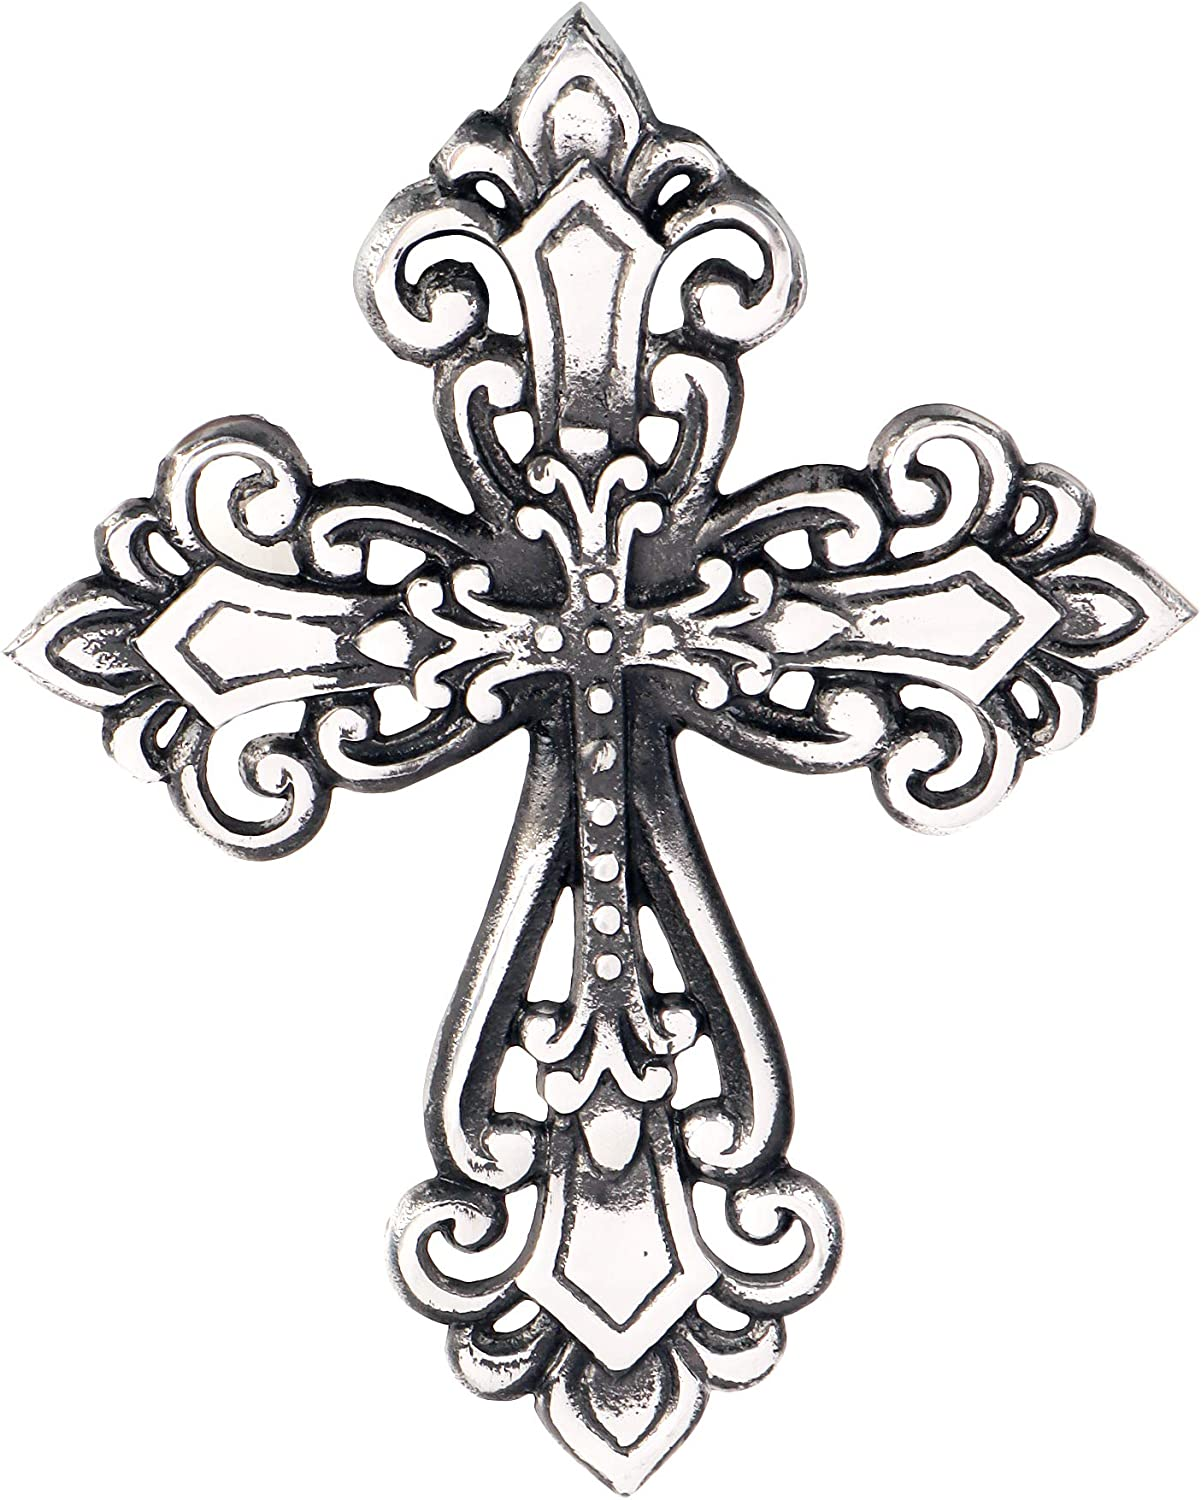 Ardour Antique Silver and Black Wall Cross for Home Decor.Metal Hanging Decorative Crosses Wall Decor - 7 x 9 Inches